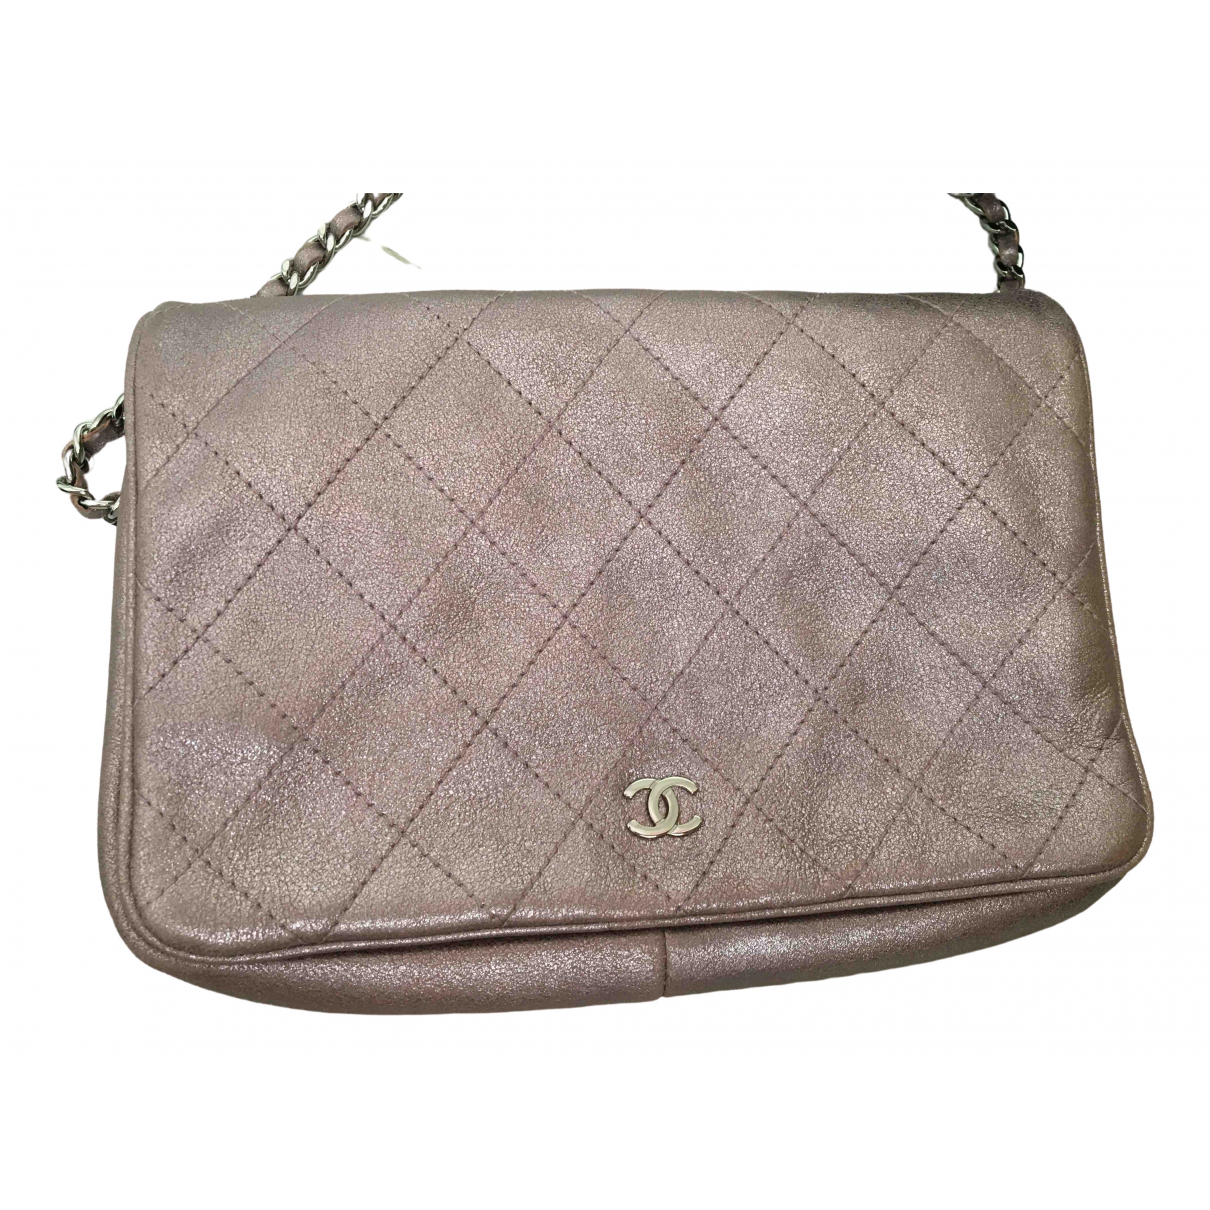 Chanel Wallet on Chain Metallic Leather Clutch bag for Women \N